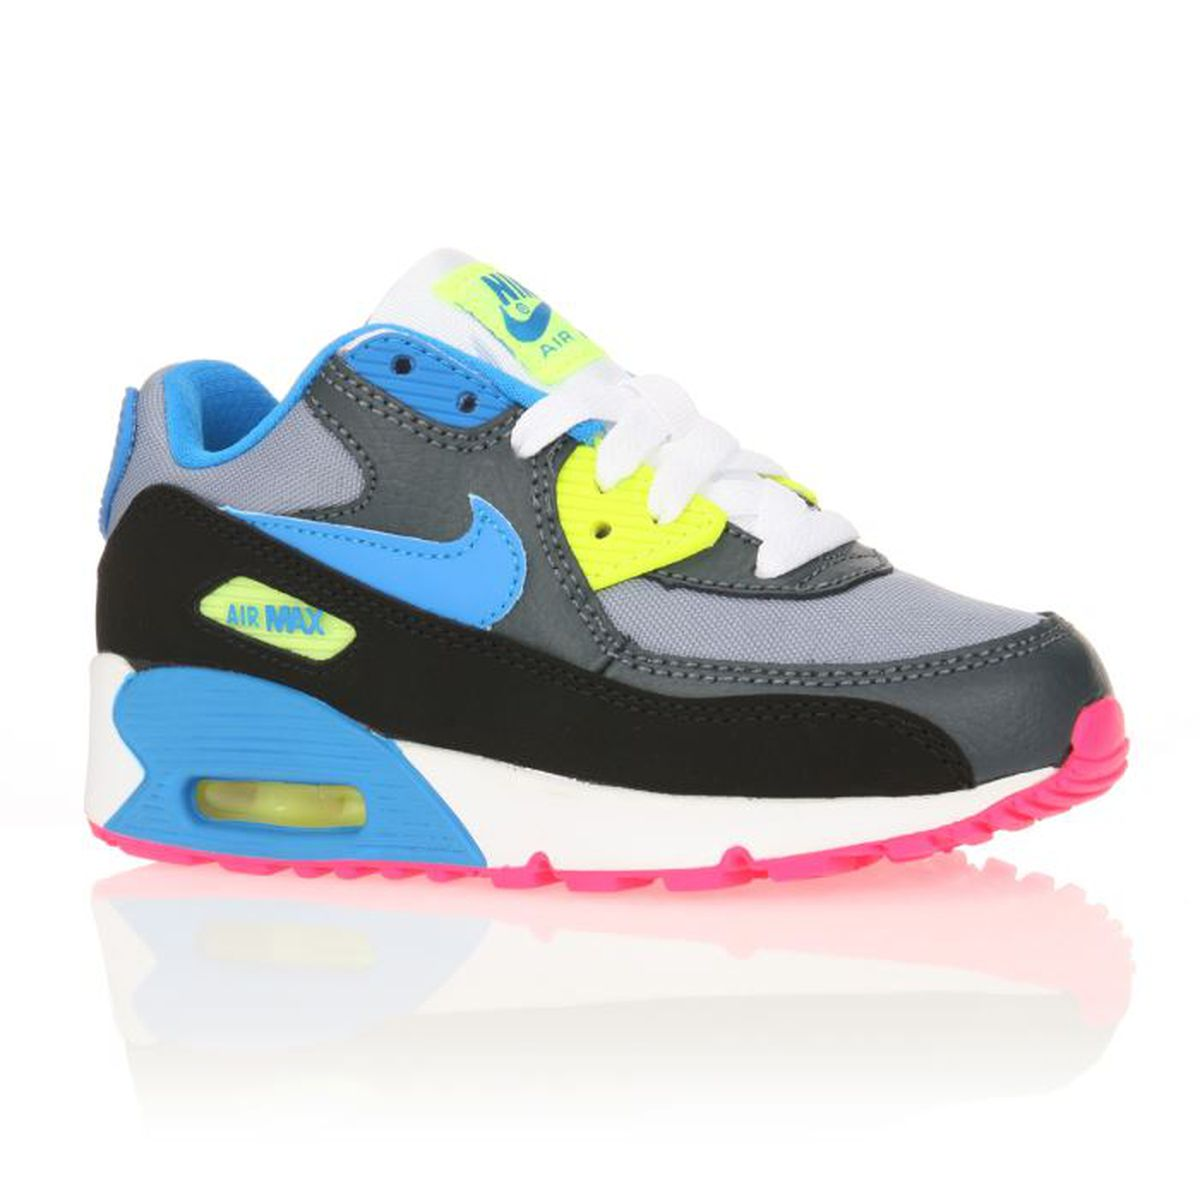 nike baskets air max 90 enfant gar on gris noir bleu achat vente basket cdiscount. Black Bedroom Furniture Sets. Home Design Ideas